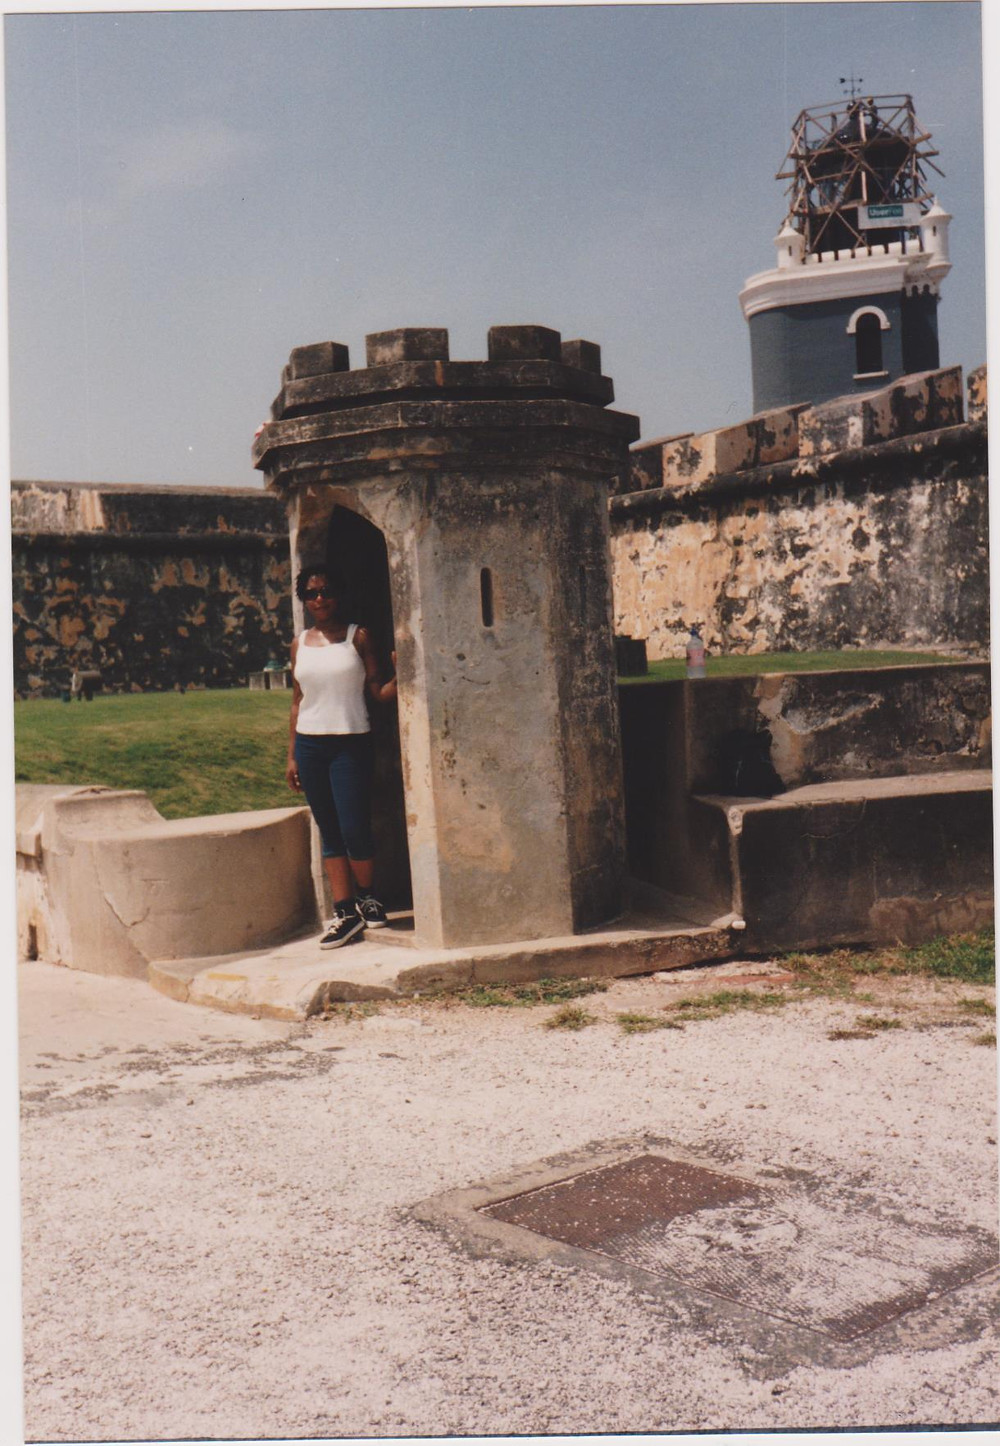 KC Washington/Fort San Cristobal